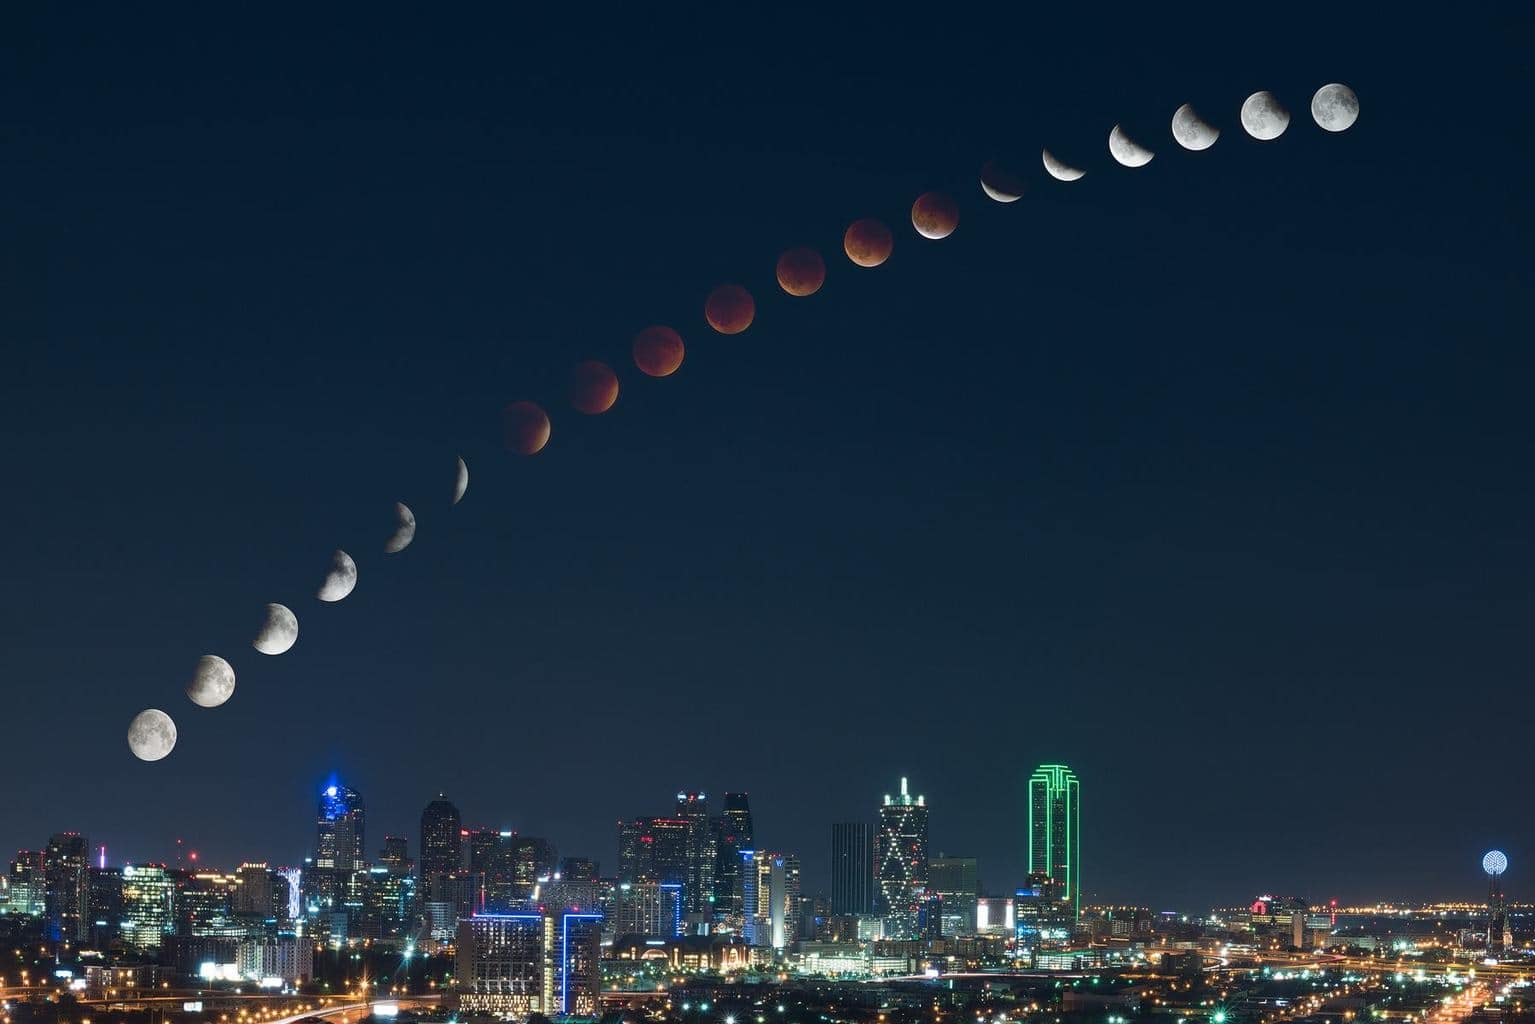 After spending 5 hours on a rooftop with an incredible view of Dallas, I was able to create this composite image showing the moon transition from full moon, to full lunar eclipse, and back. Each moon image was shot approximately 10 minutes apart to capture the entire transition. I hope you all enjoy! Feel free to share!